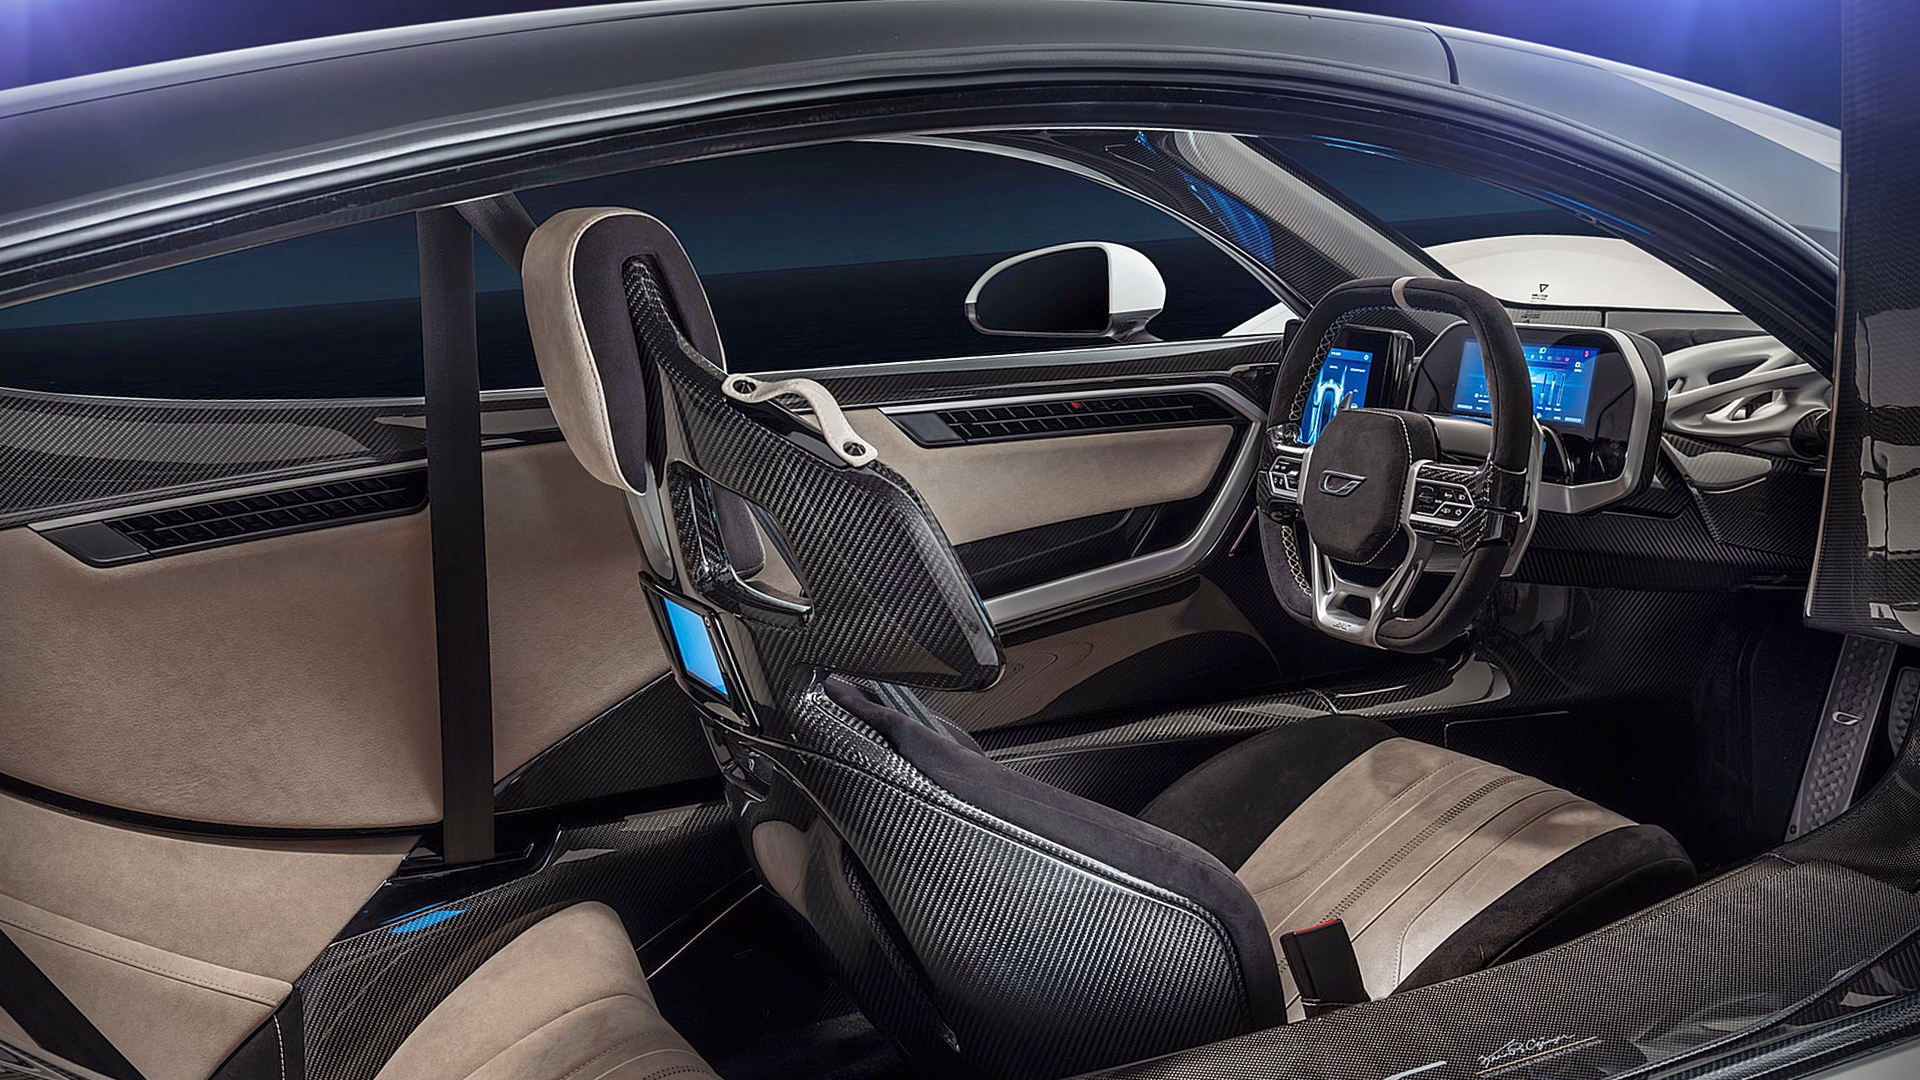 2020 Czinger 21C Interior Wallpaper Hd